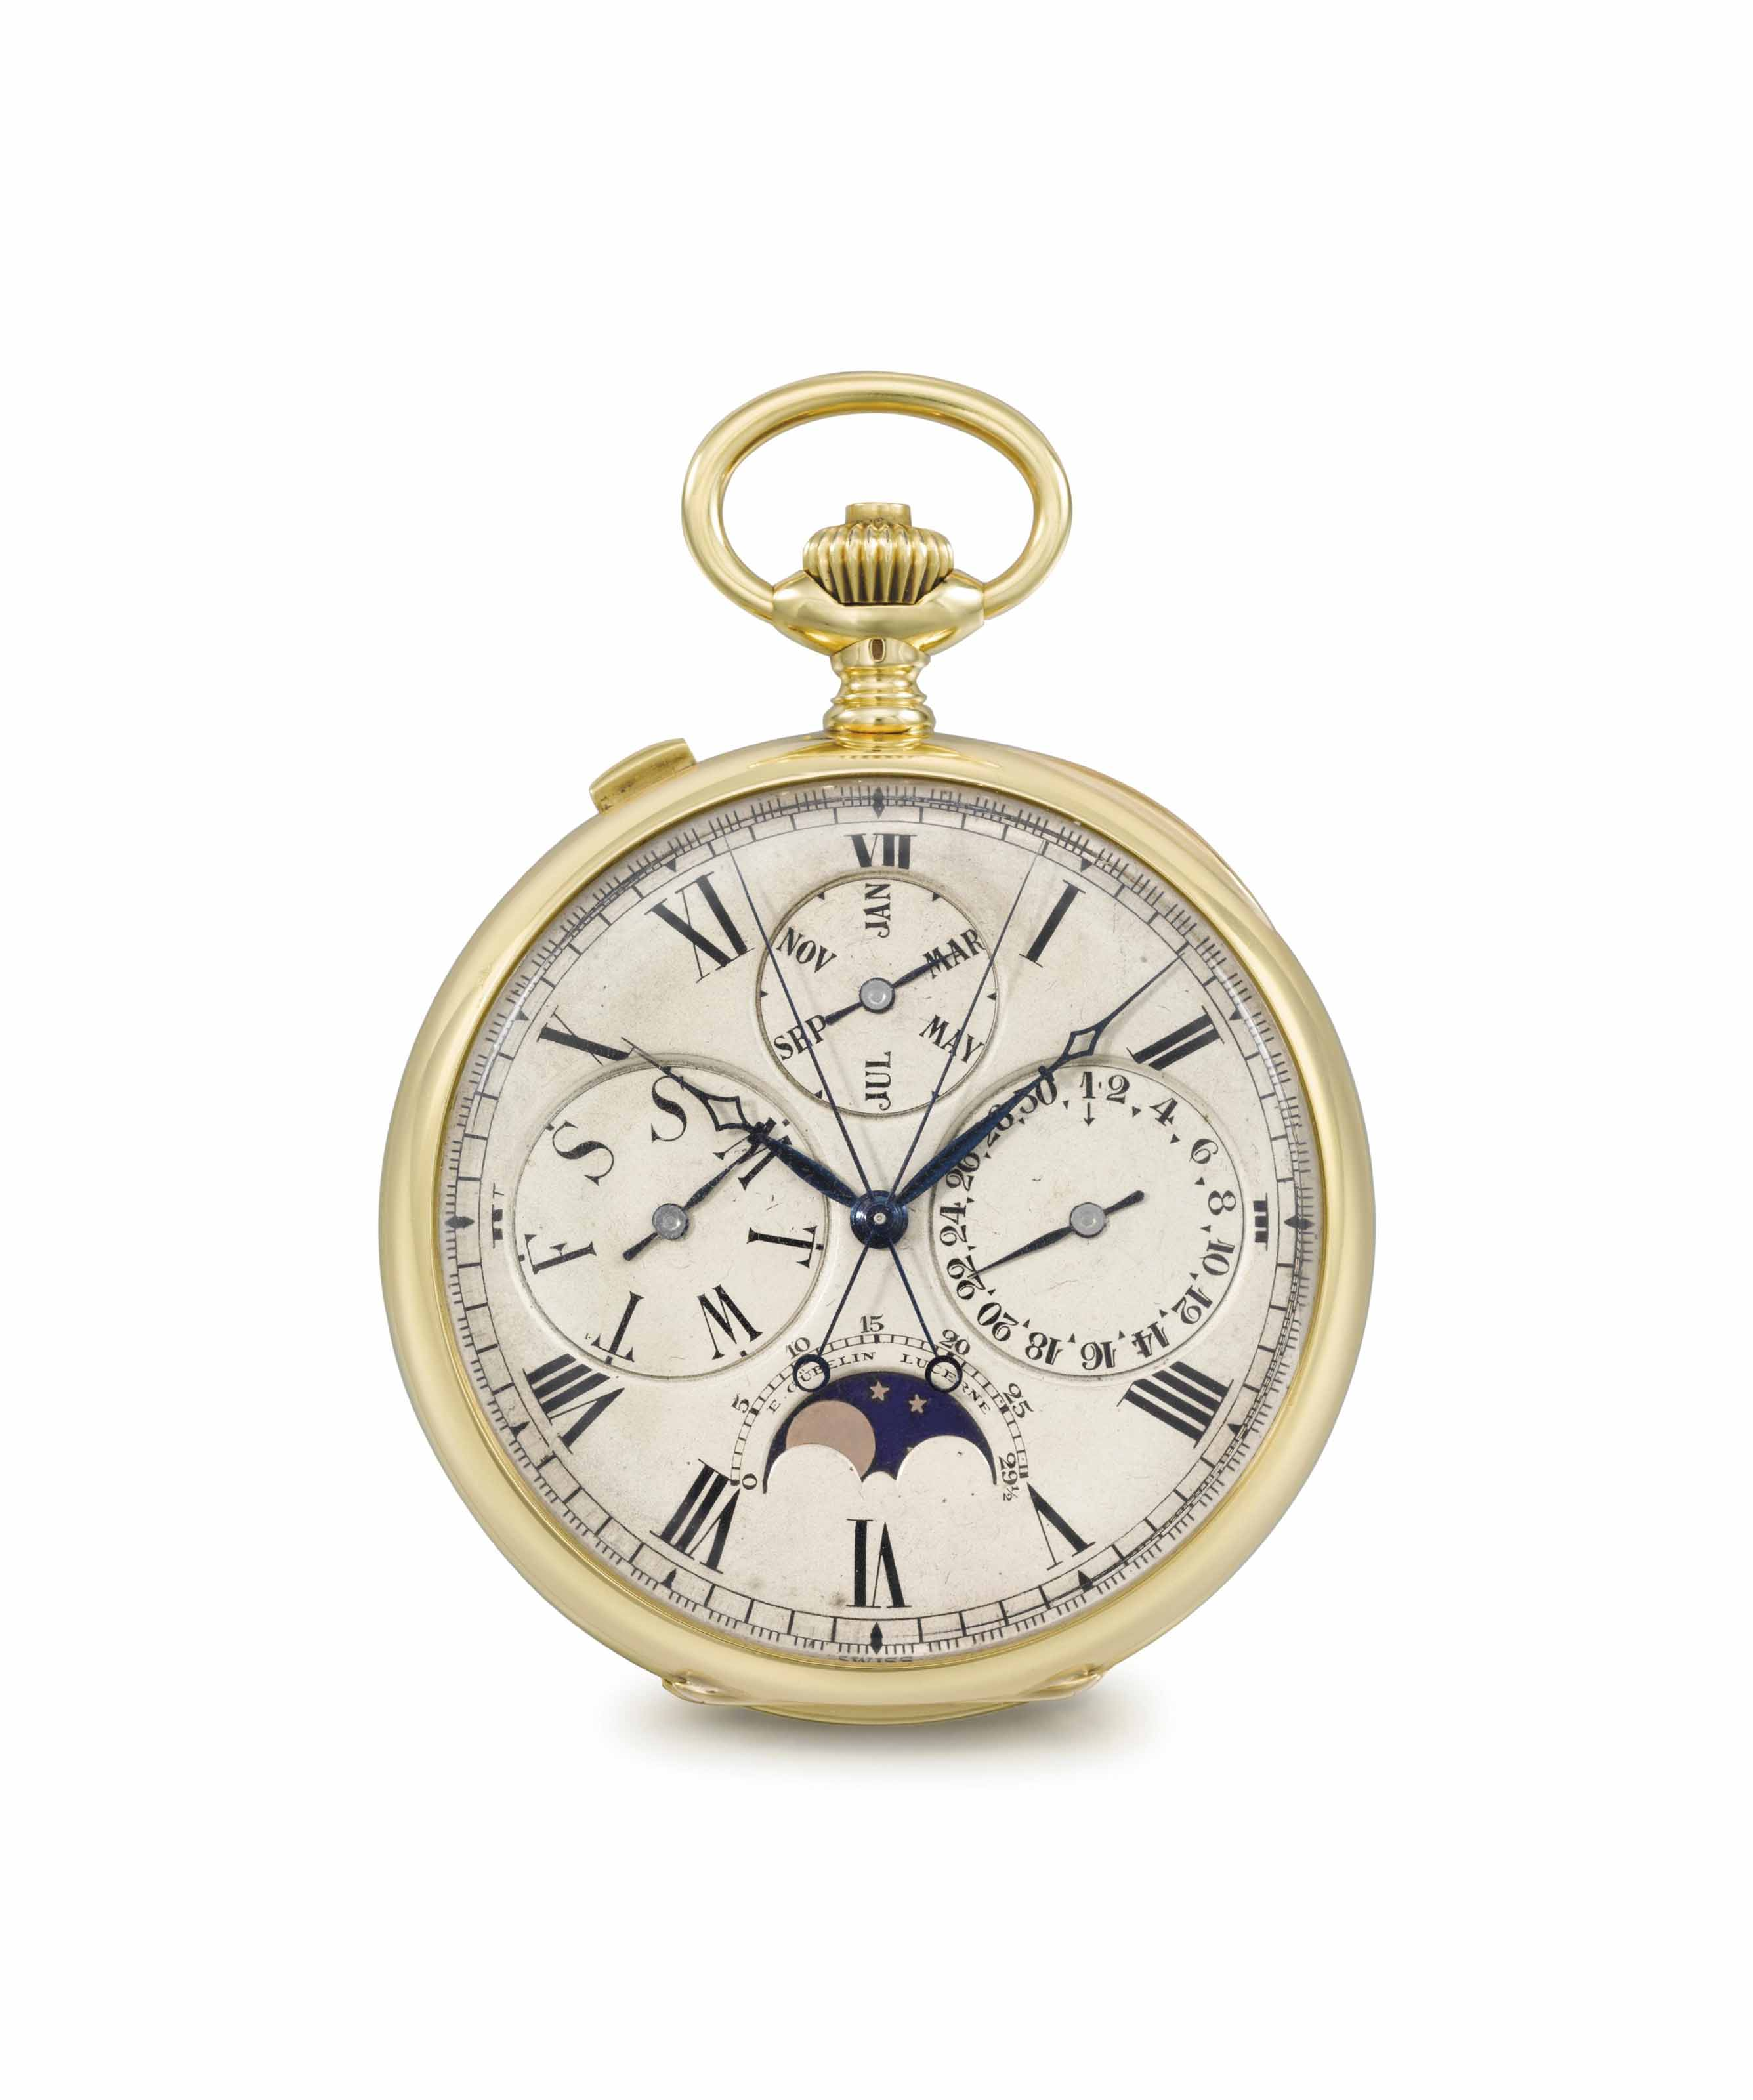 Audemars Piguet for E. Gübelin. A very fine and rare 18K gold openface perpetual calendar split seconds chronograph keyless lever watch with moon phases and oversized subsidiary dials